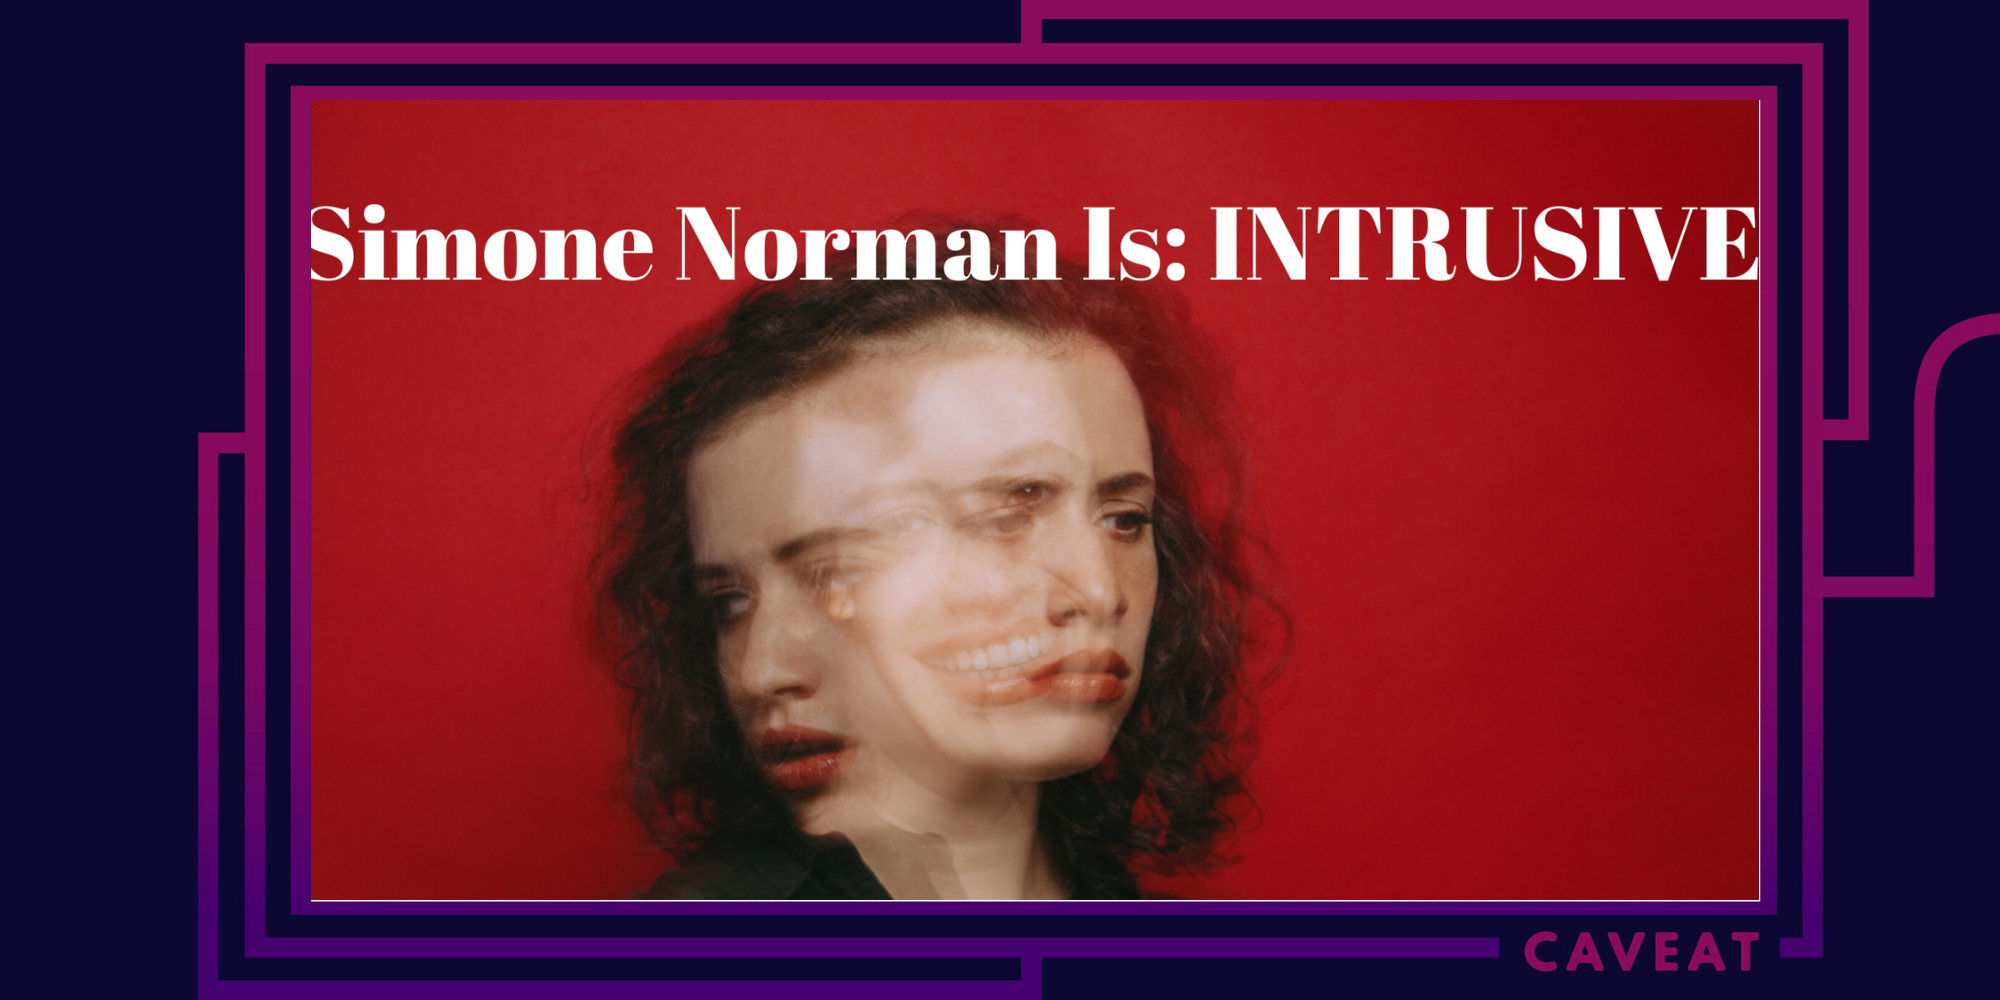 103022 image - Simone Norman Is: INTRUSIVE